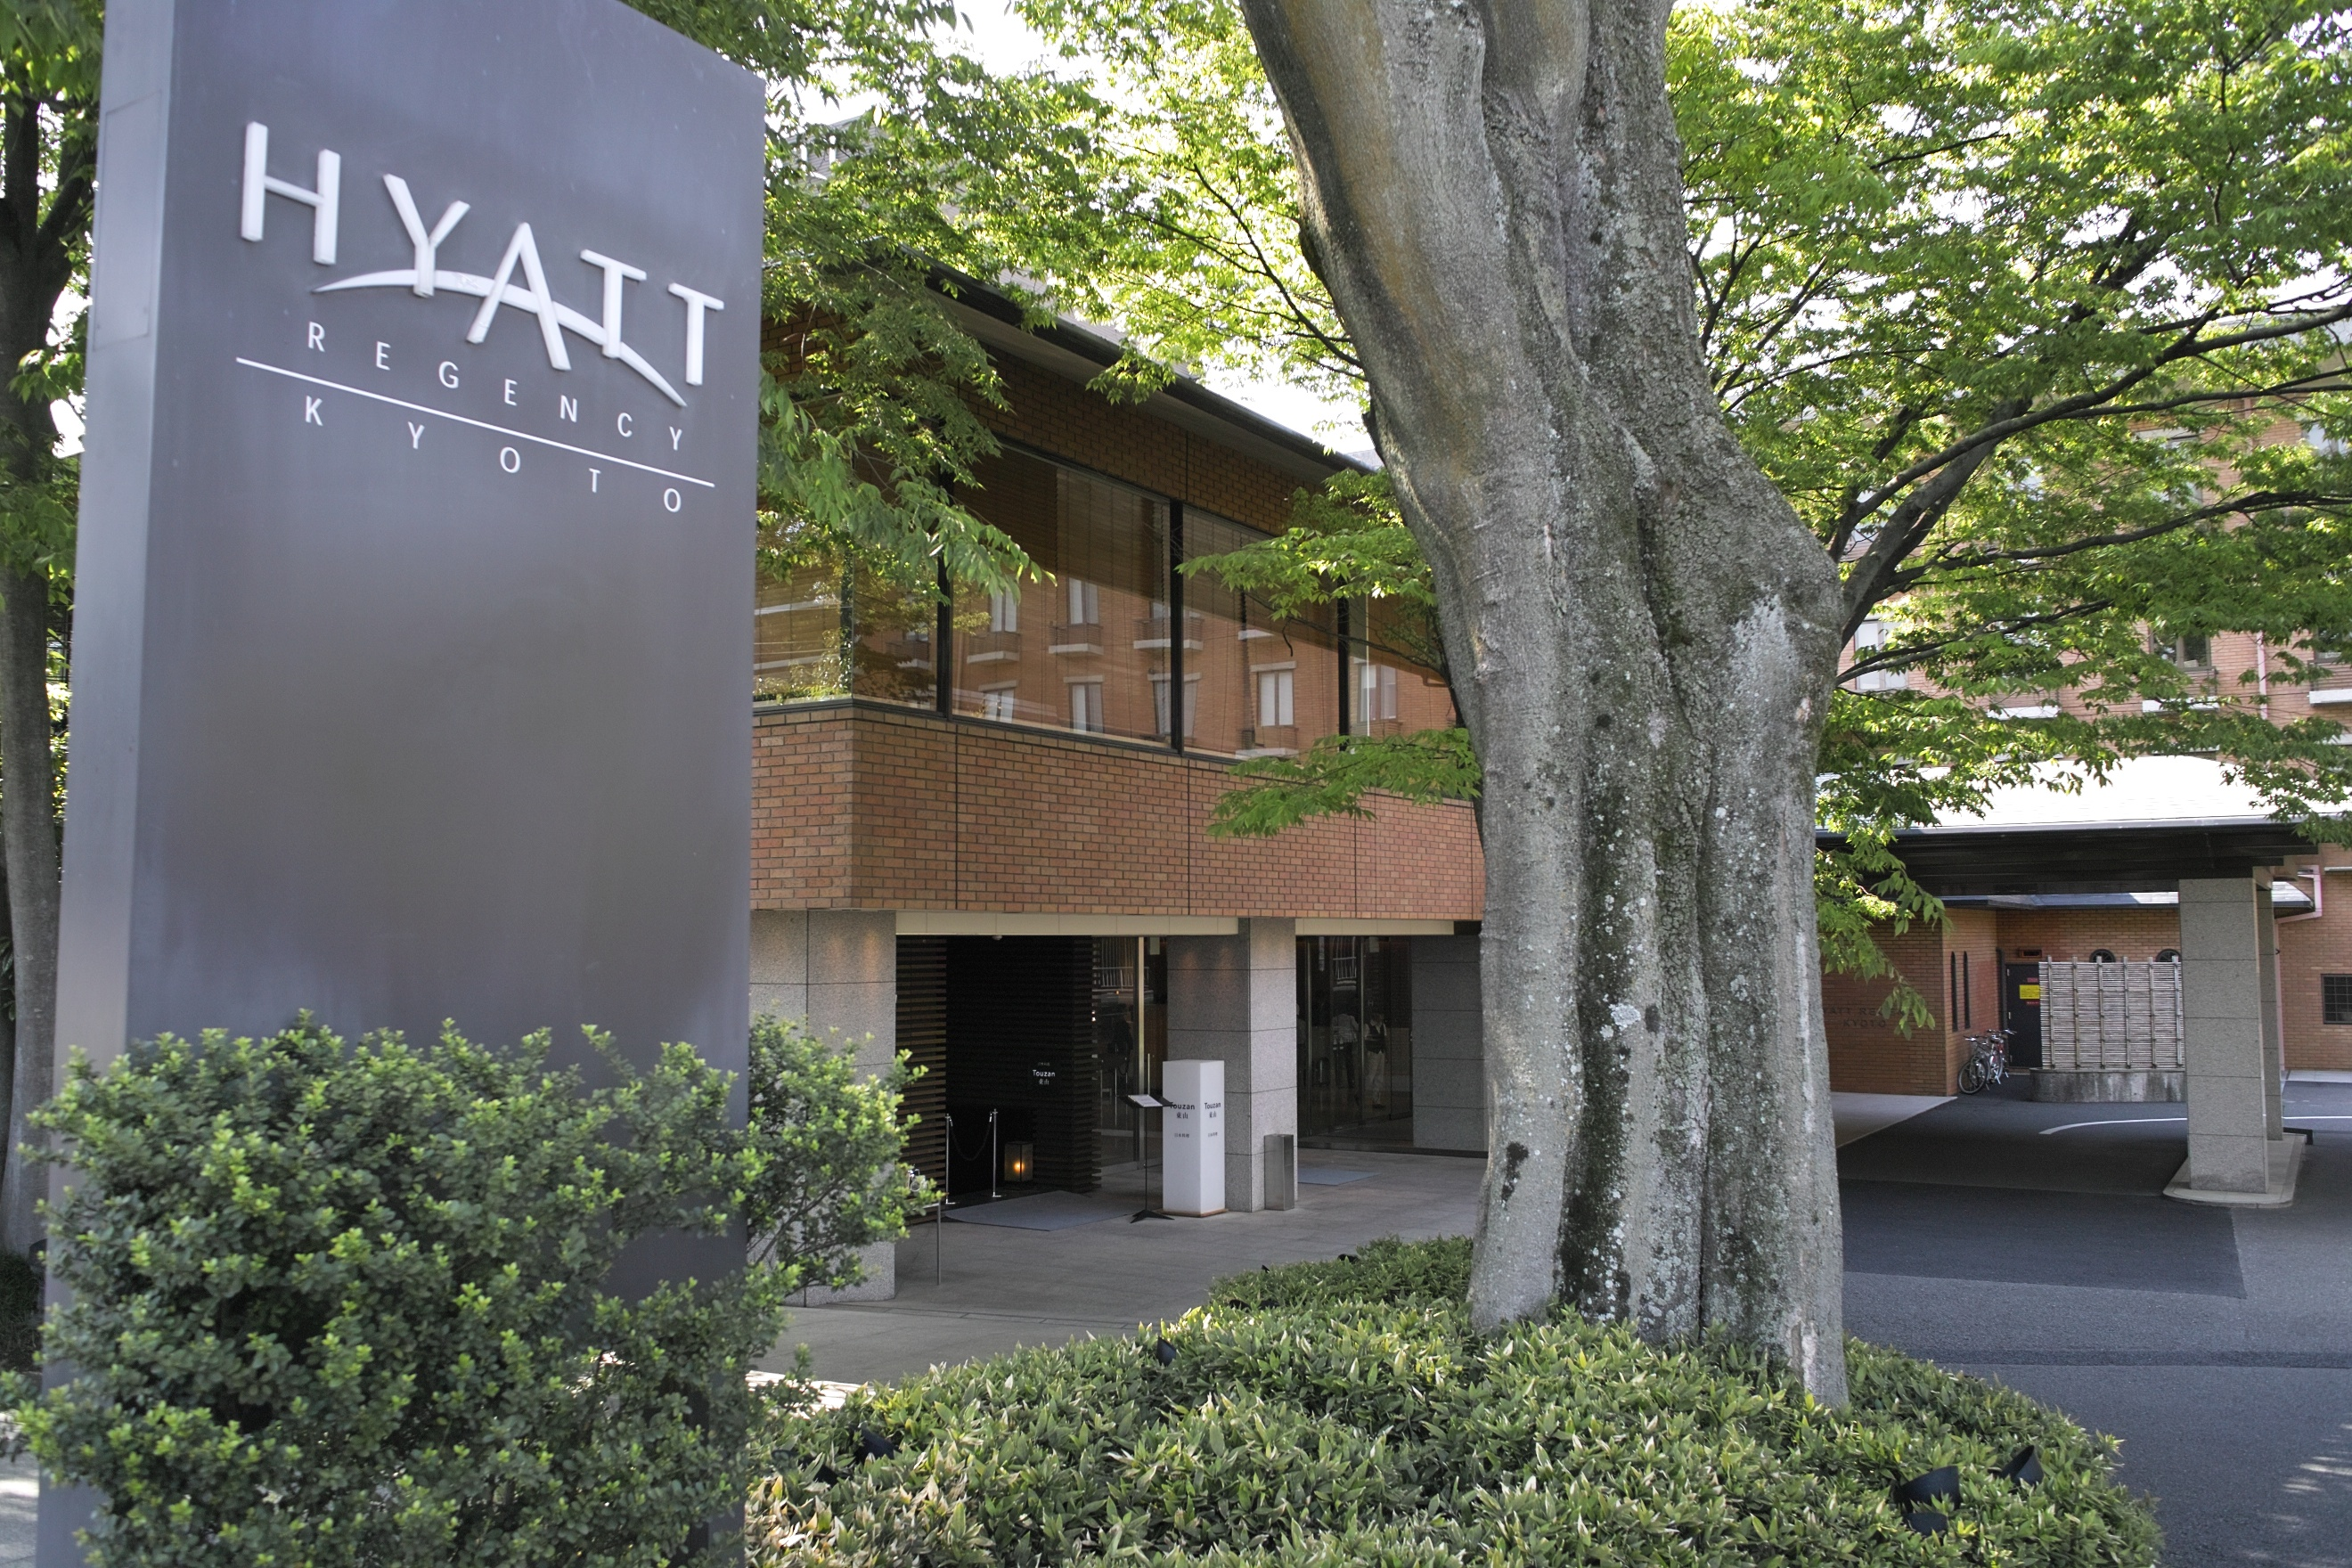 Hyatt Regency Kyoto